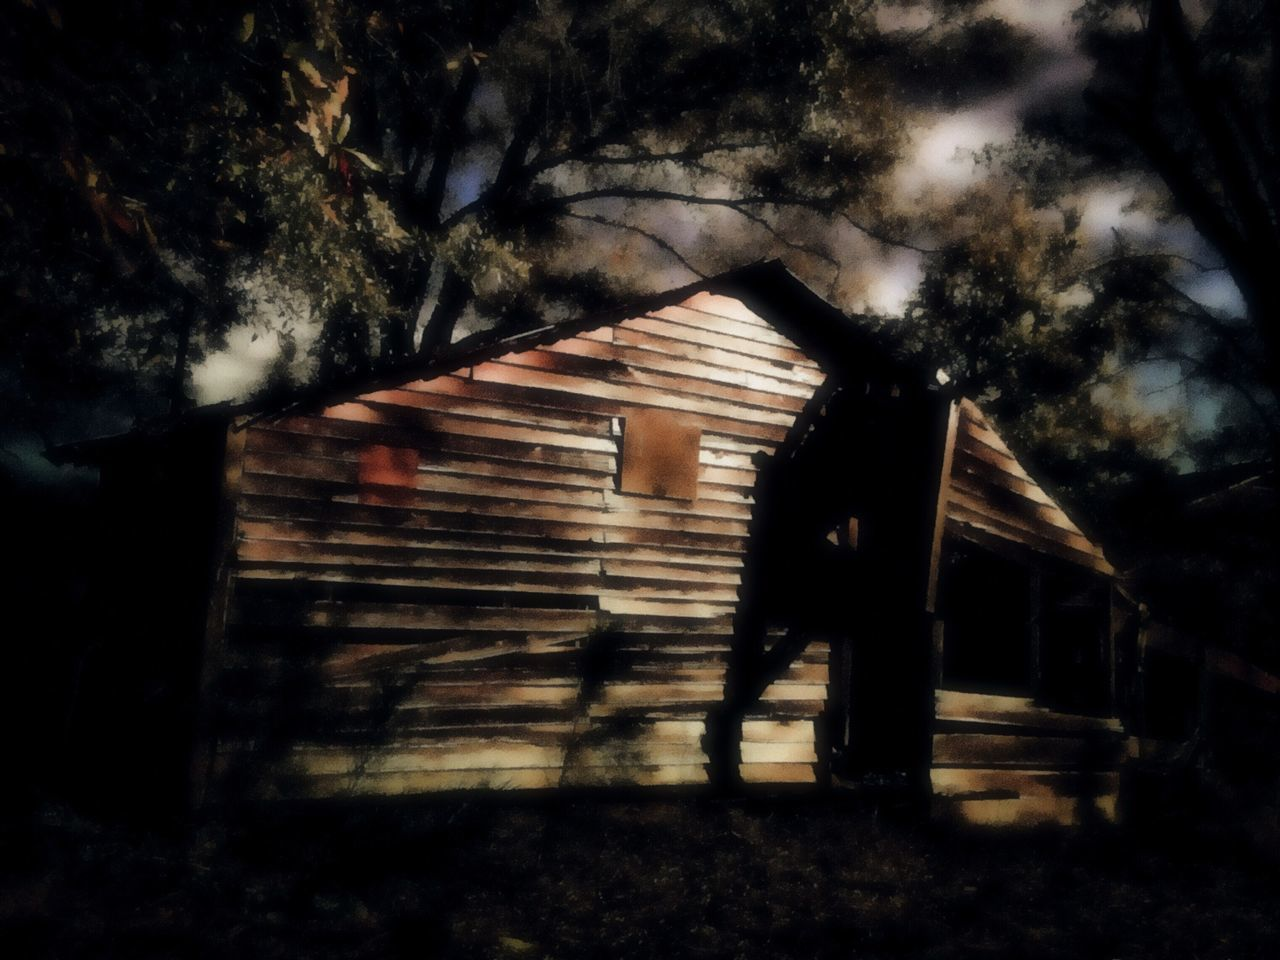 They say nothing good ever happens after midnight. I vehemently disagree.😉😈 Night Moon Moonlight Mischievous Tree Barn Outdoors Nature Light And Shadow Peace And Quiet Walking Around Tranquility Taking Photos Relaxing Abandoned Looking For Trouble Built Structure Building Exterior Tree